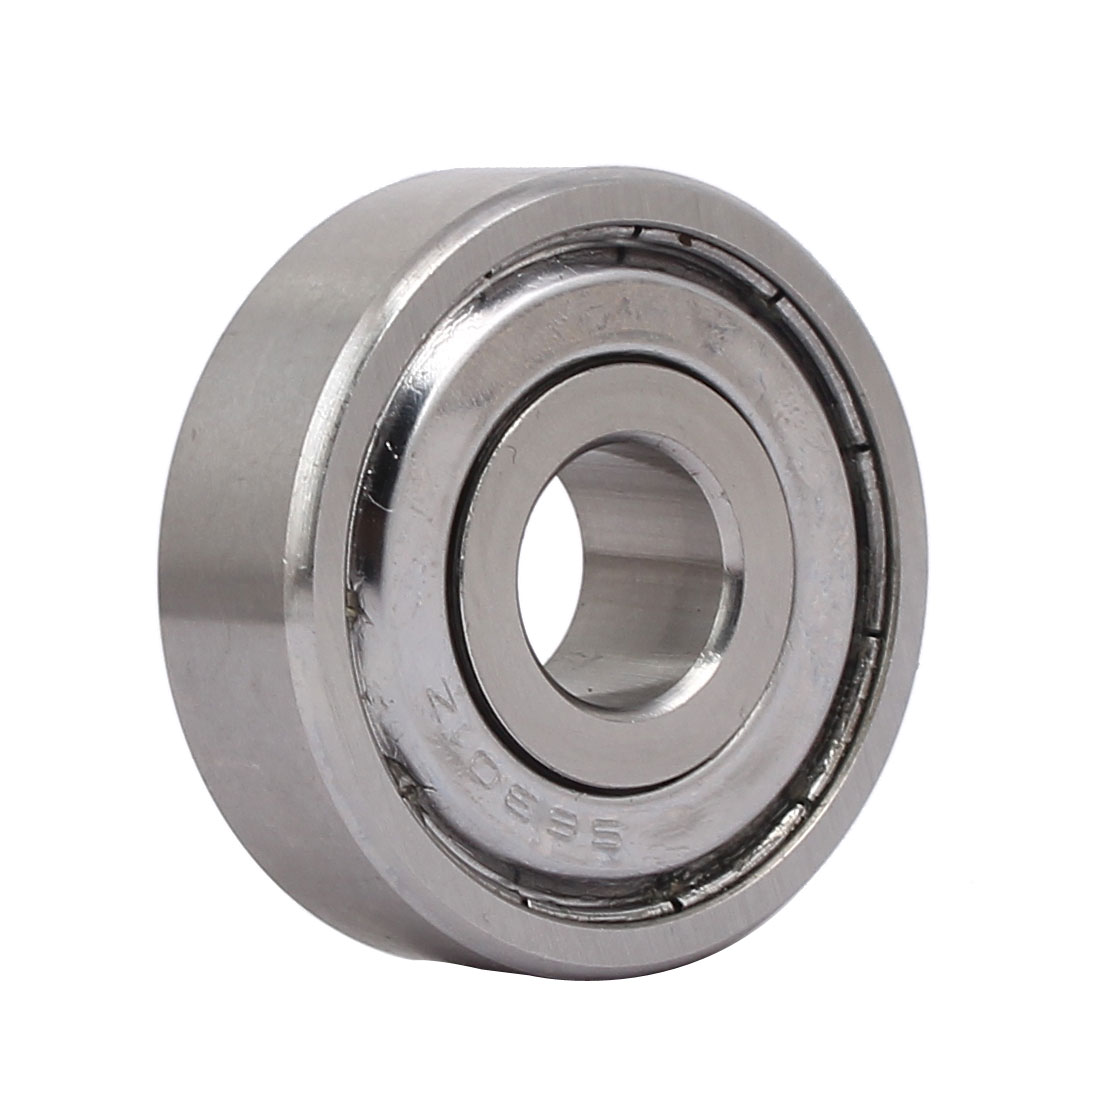 6301Z 37mmx12mmx12mm Stainless Steel Shielded Deep Groove Radial Ball Bearing